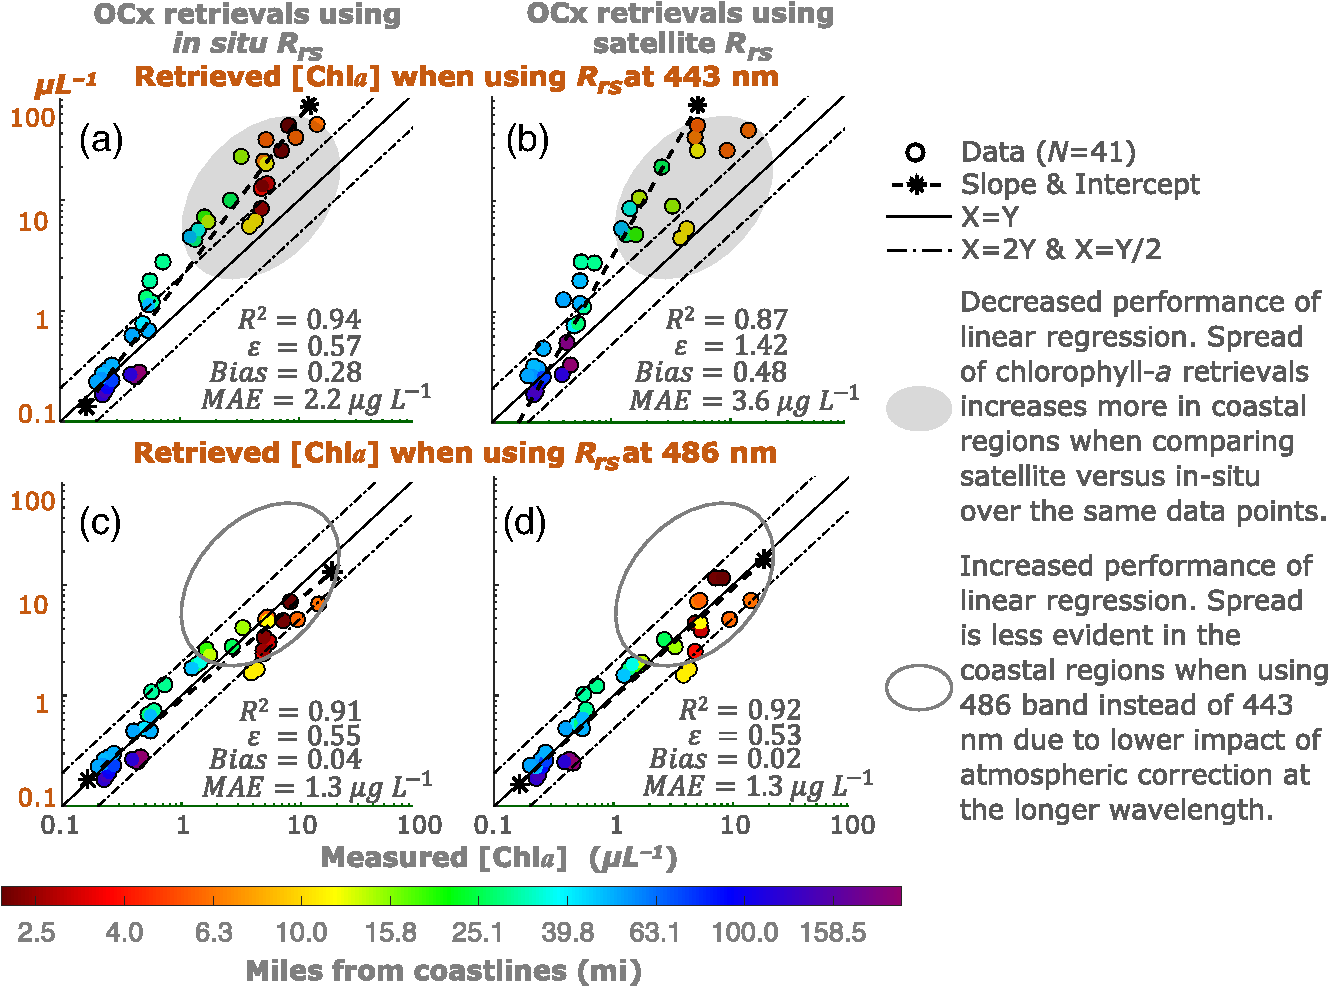 Analyses of satellite ocean color retrievals show advantage of